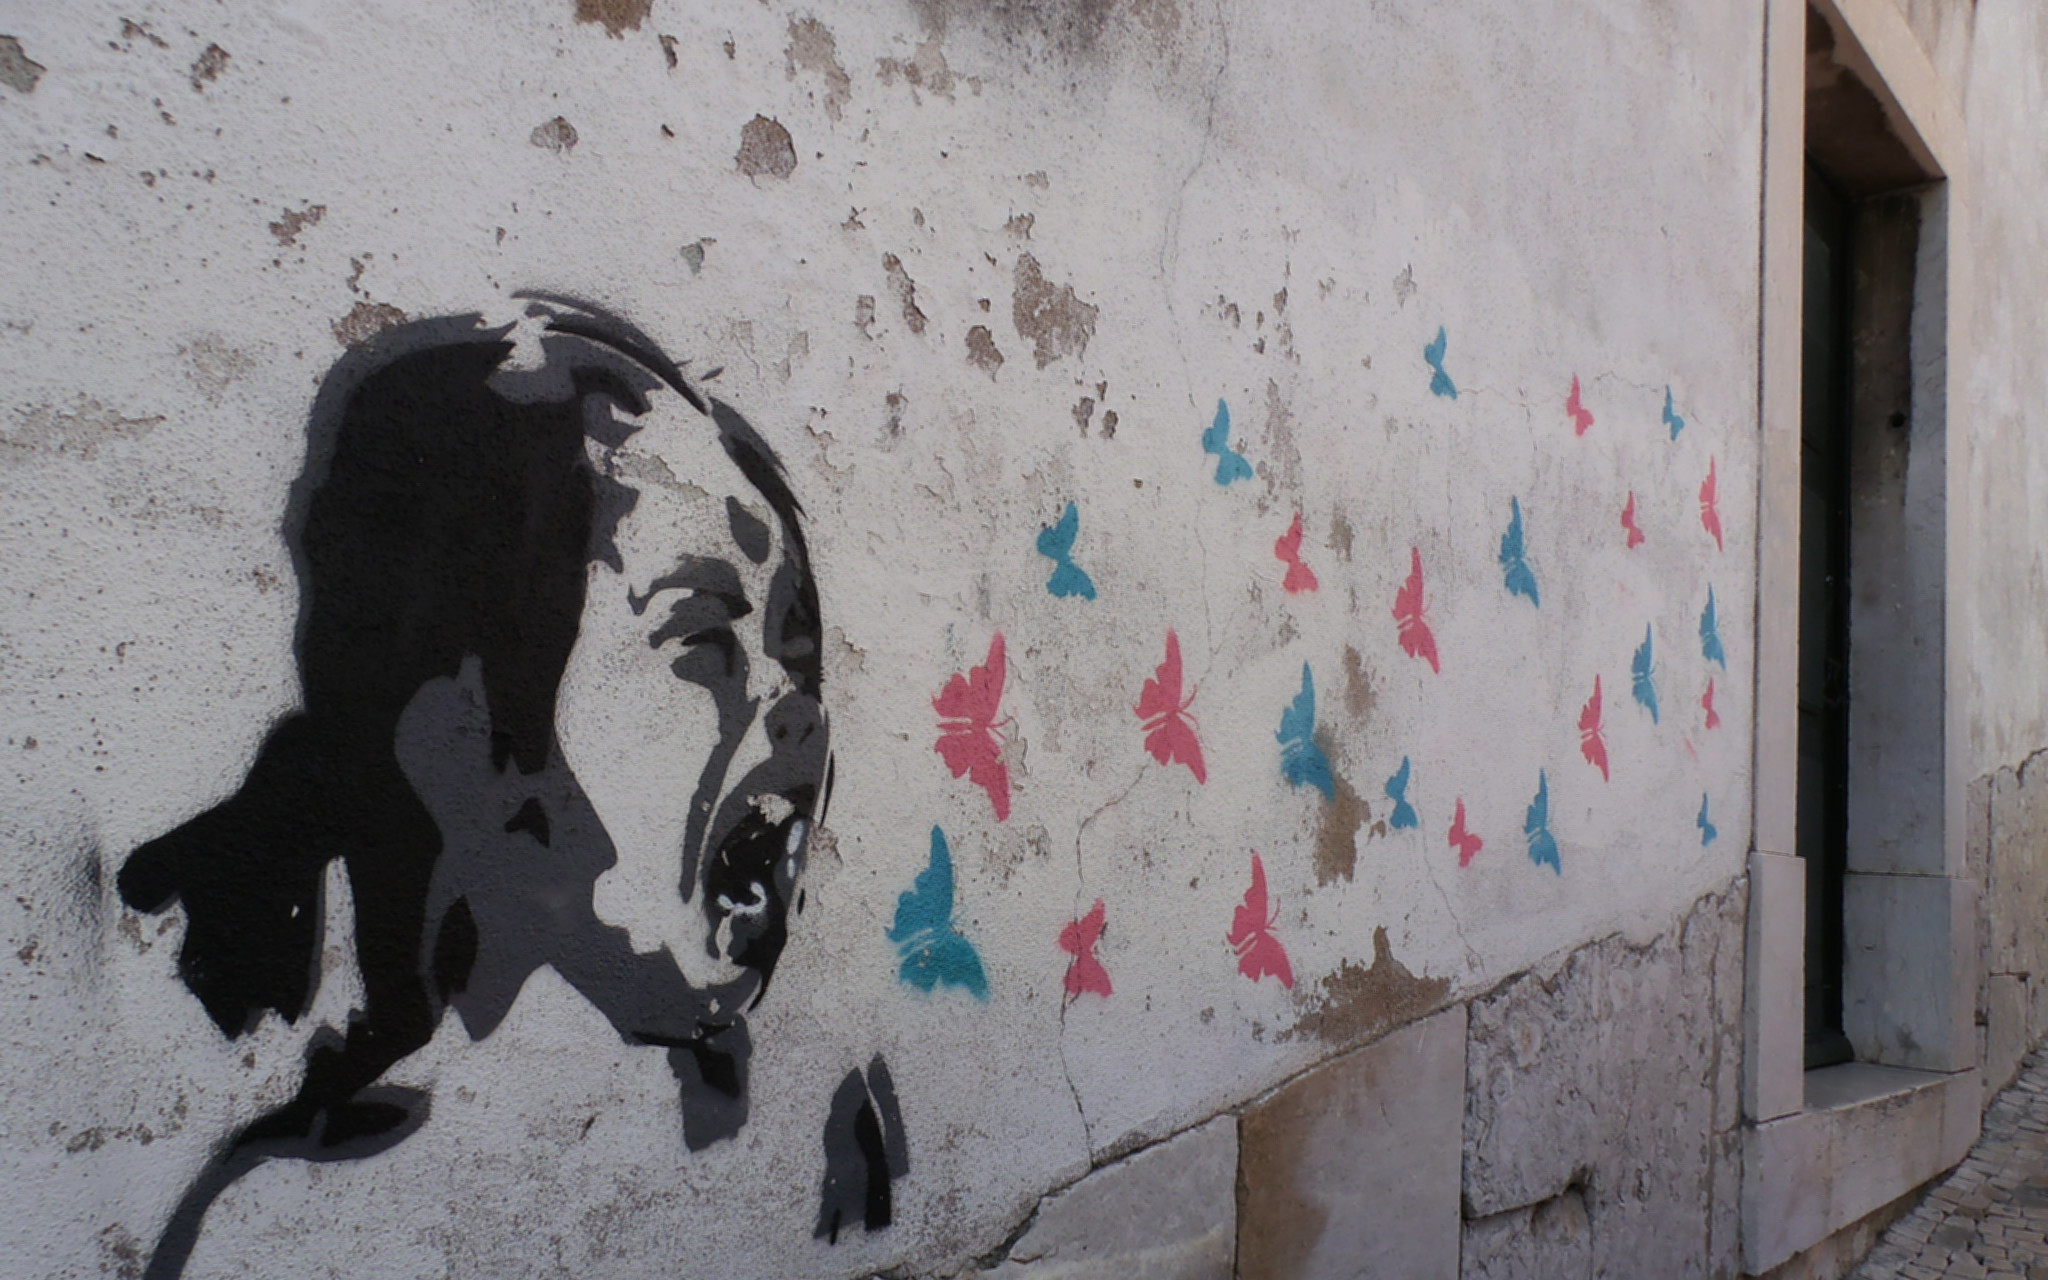 Image: A photo of street art where a young girl screams and blue and pink butterflies flutter out of her mouth